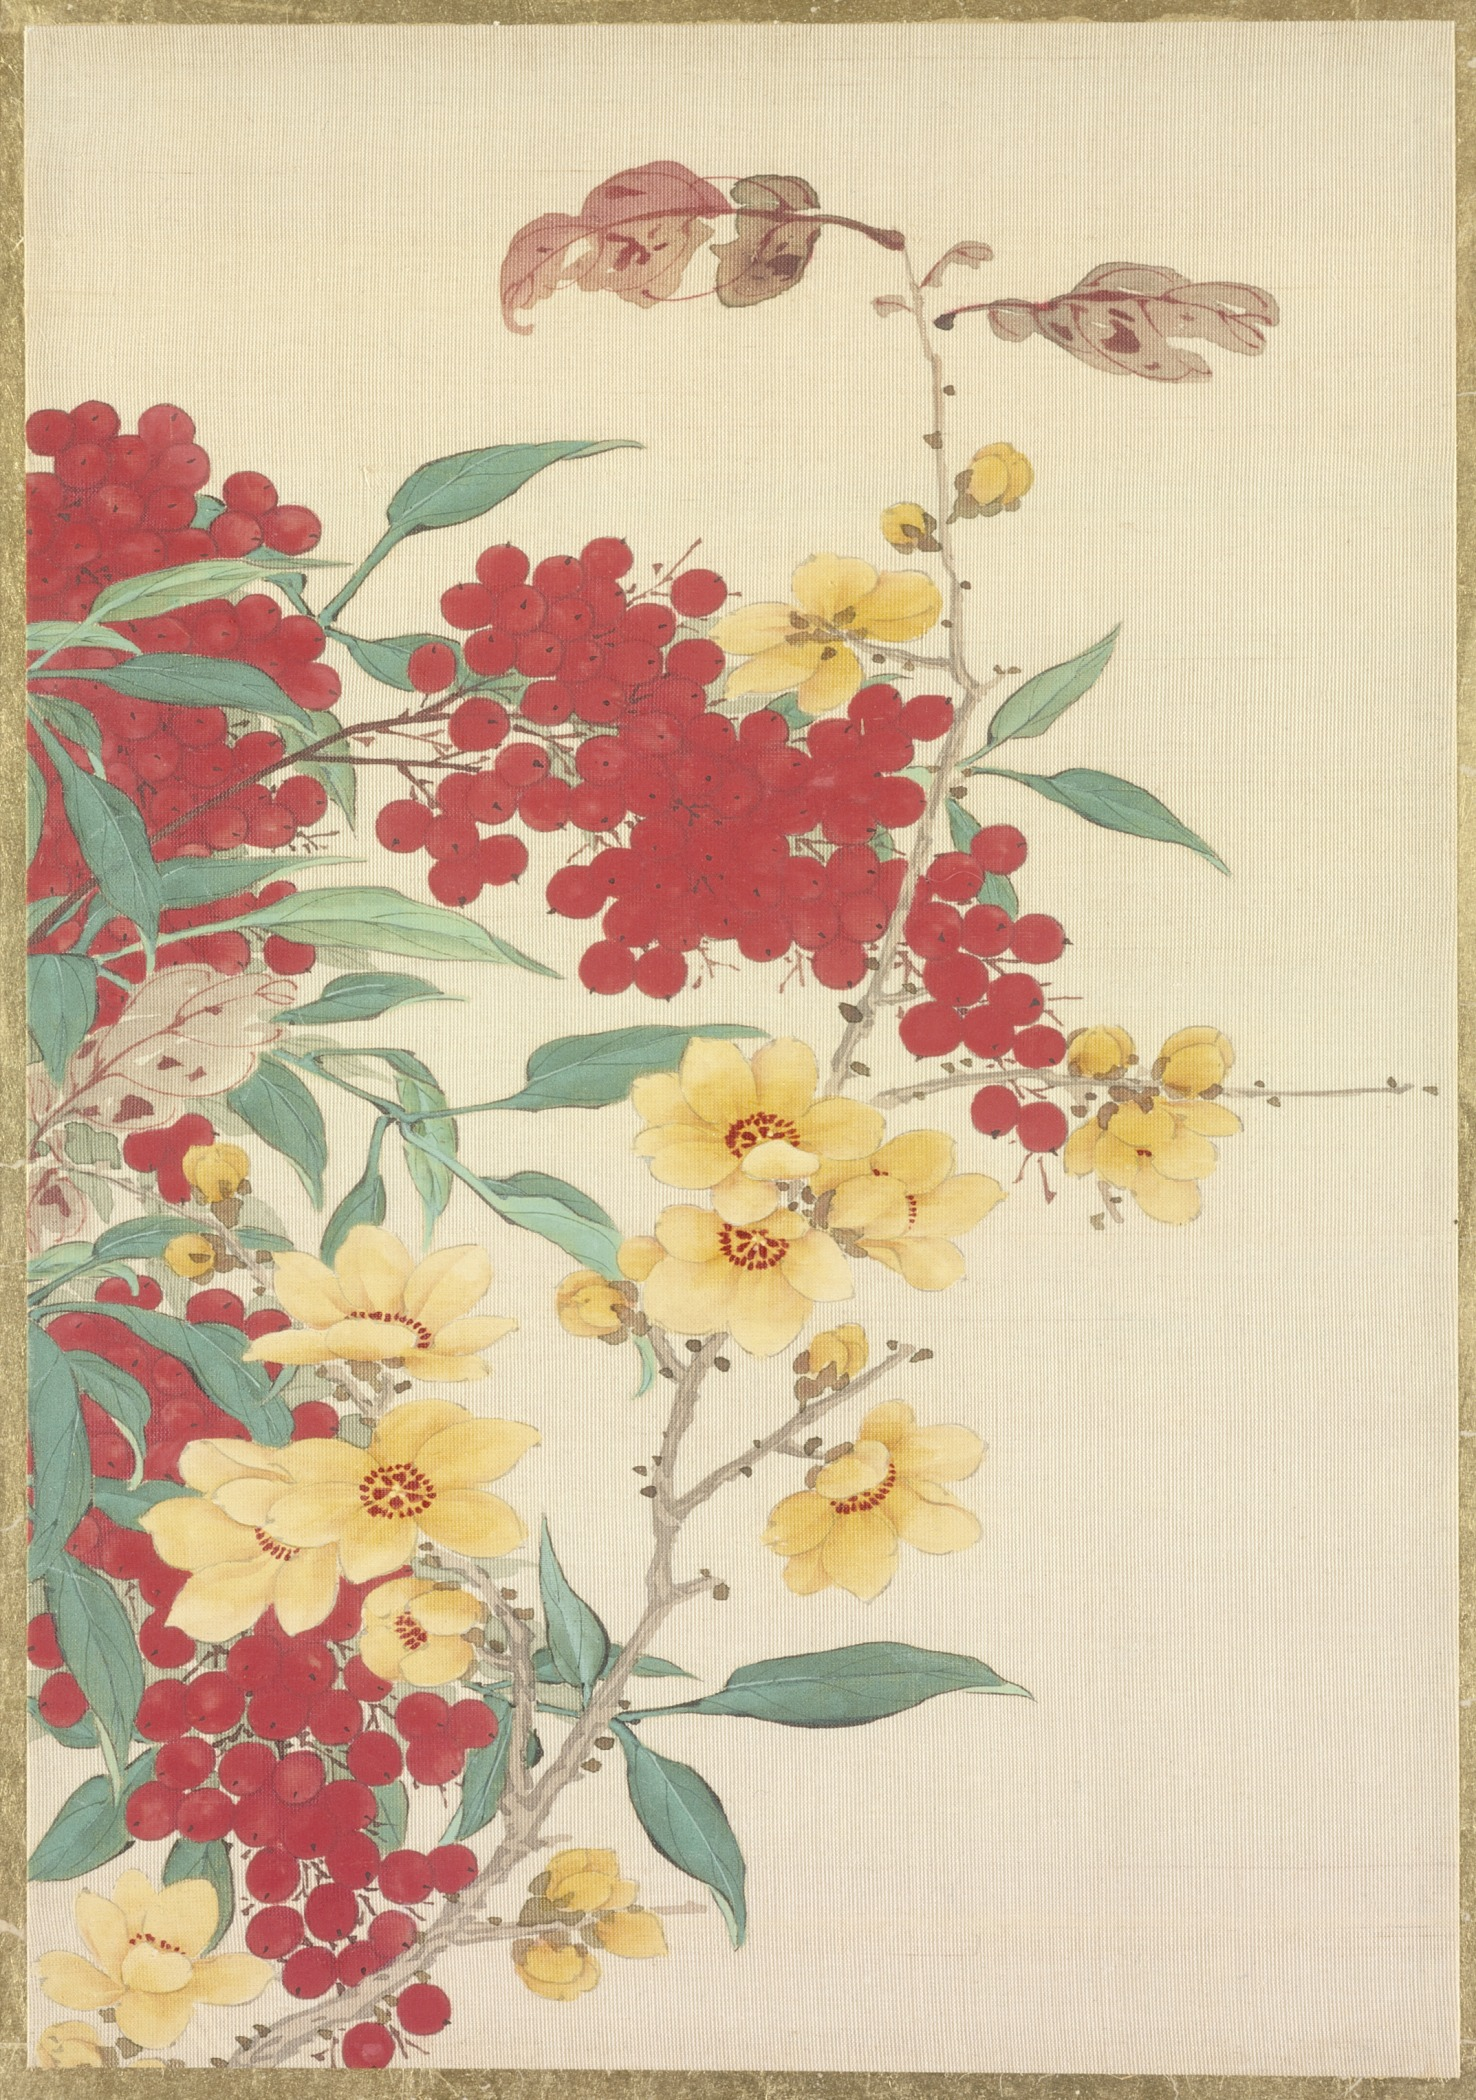 https://upload.wikimedia.org/wikipedia/commons/f/fc/Pictures_of_Flowers_and_Birds_LACMA_M.85.99_%2815_of_25%29.jpg